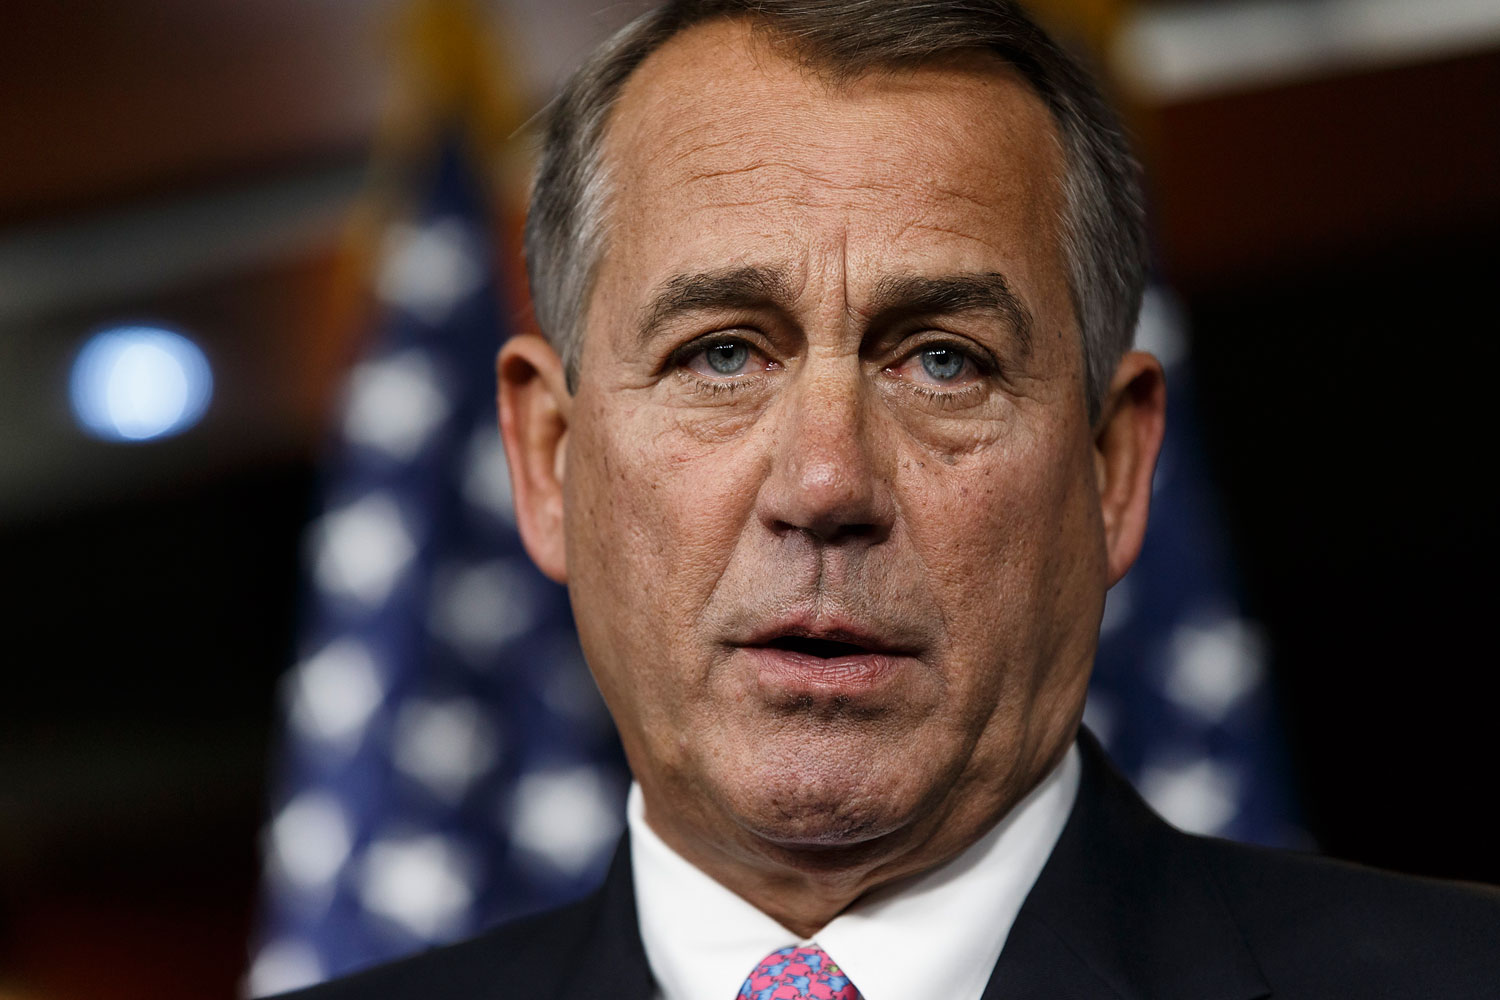 House Speaker John Boehner of Ohio speaks during a news conference on Capitol Hill in Washington, Feb. 6, 2014.